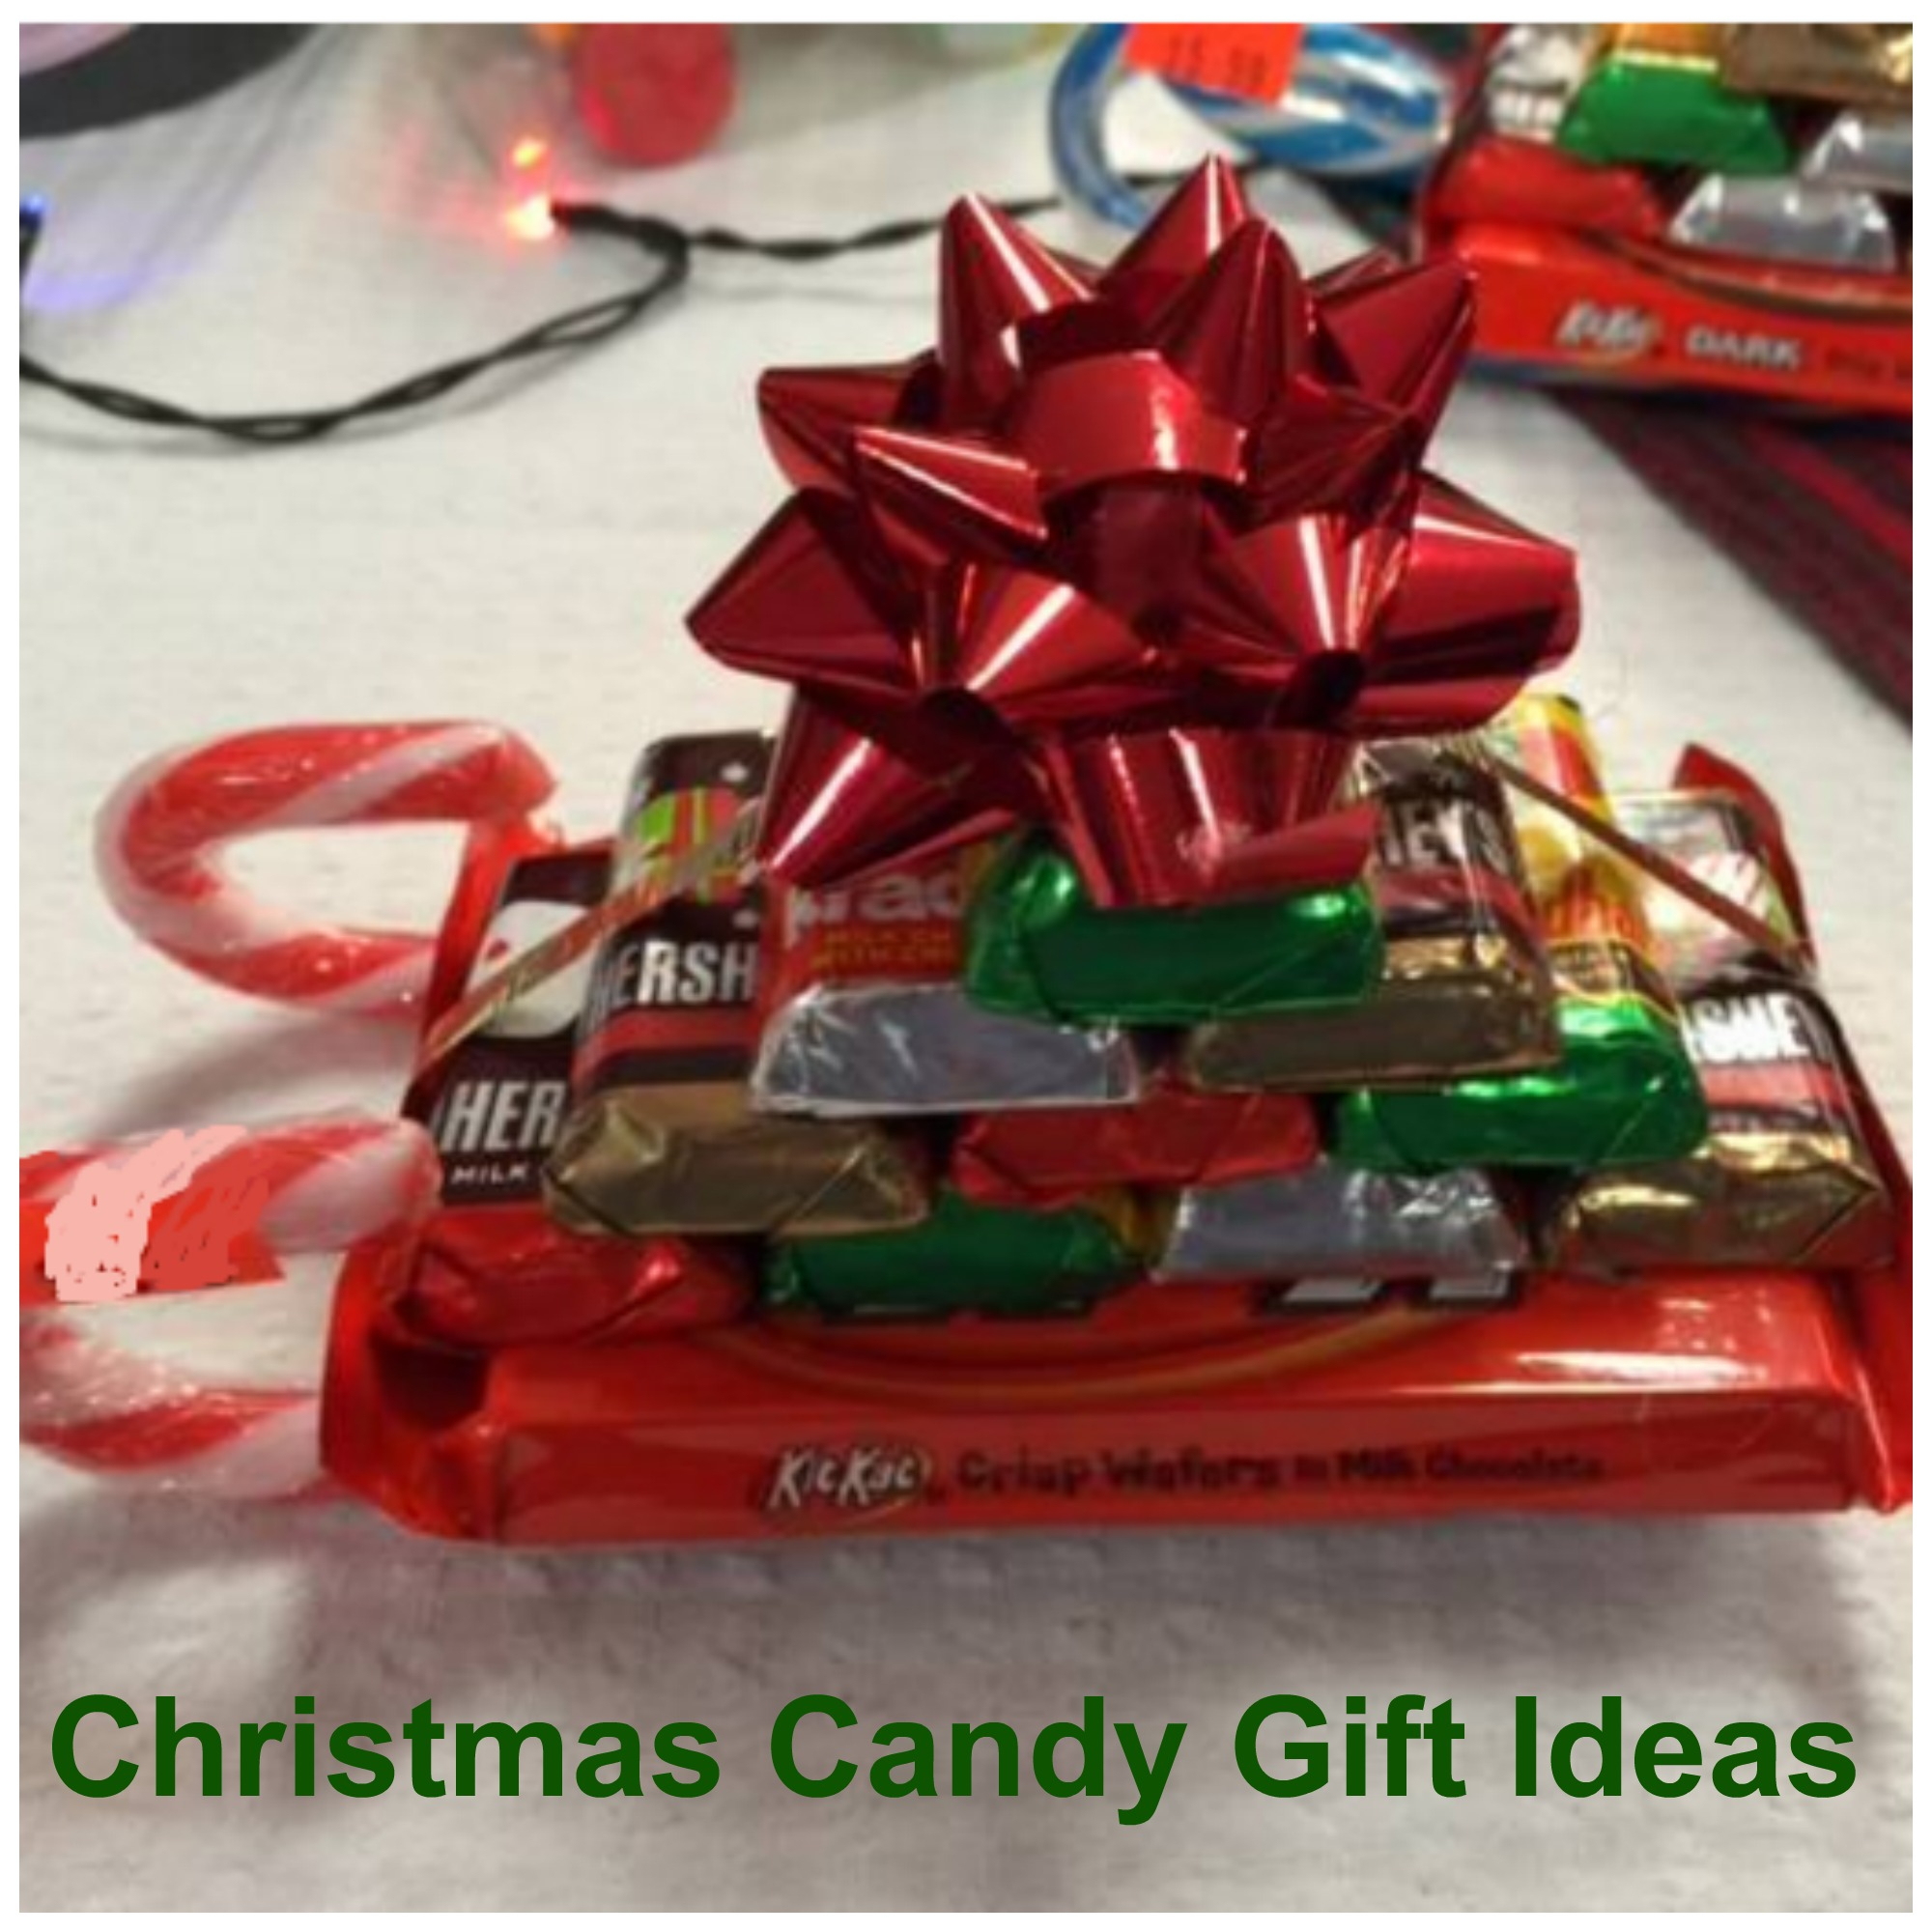 10 Stylish Candy Gift Ideas For Christmas christmas candy gift ideas family finds fun 2020